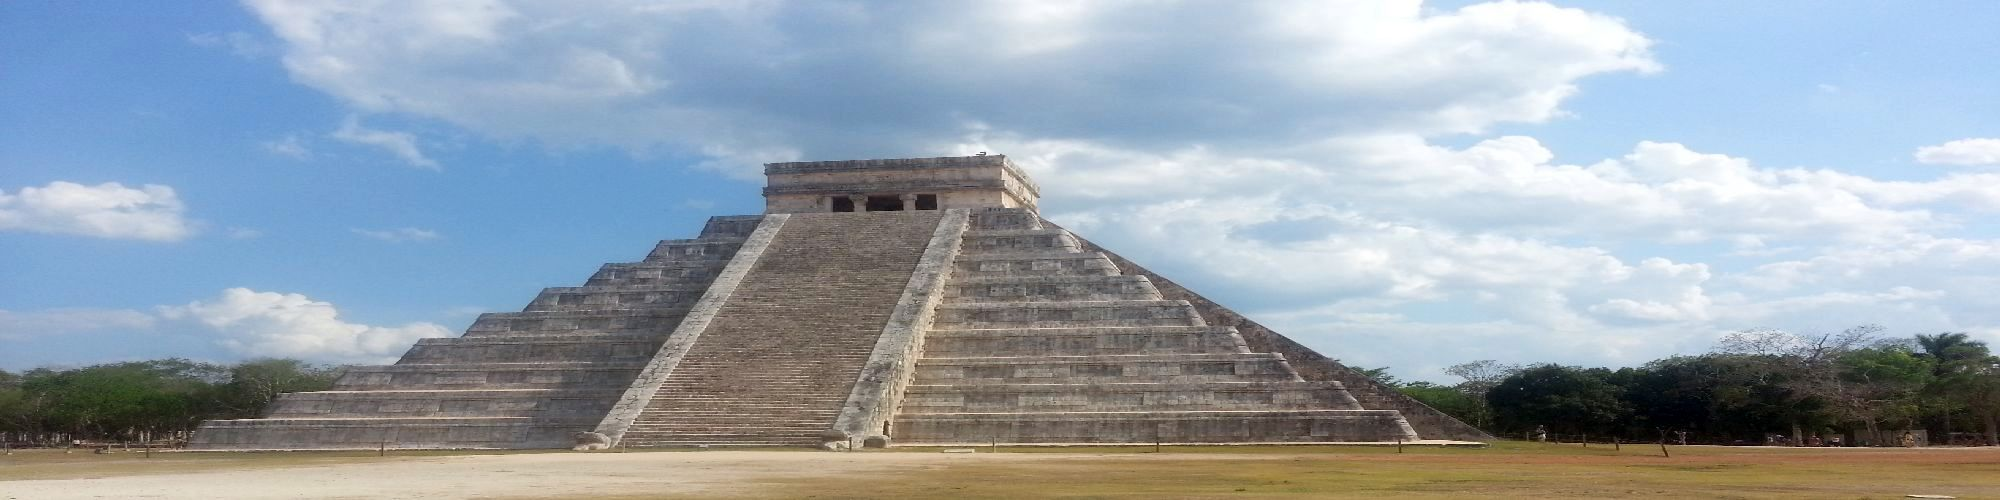 Tour nach Chichen Itza